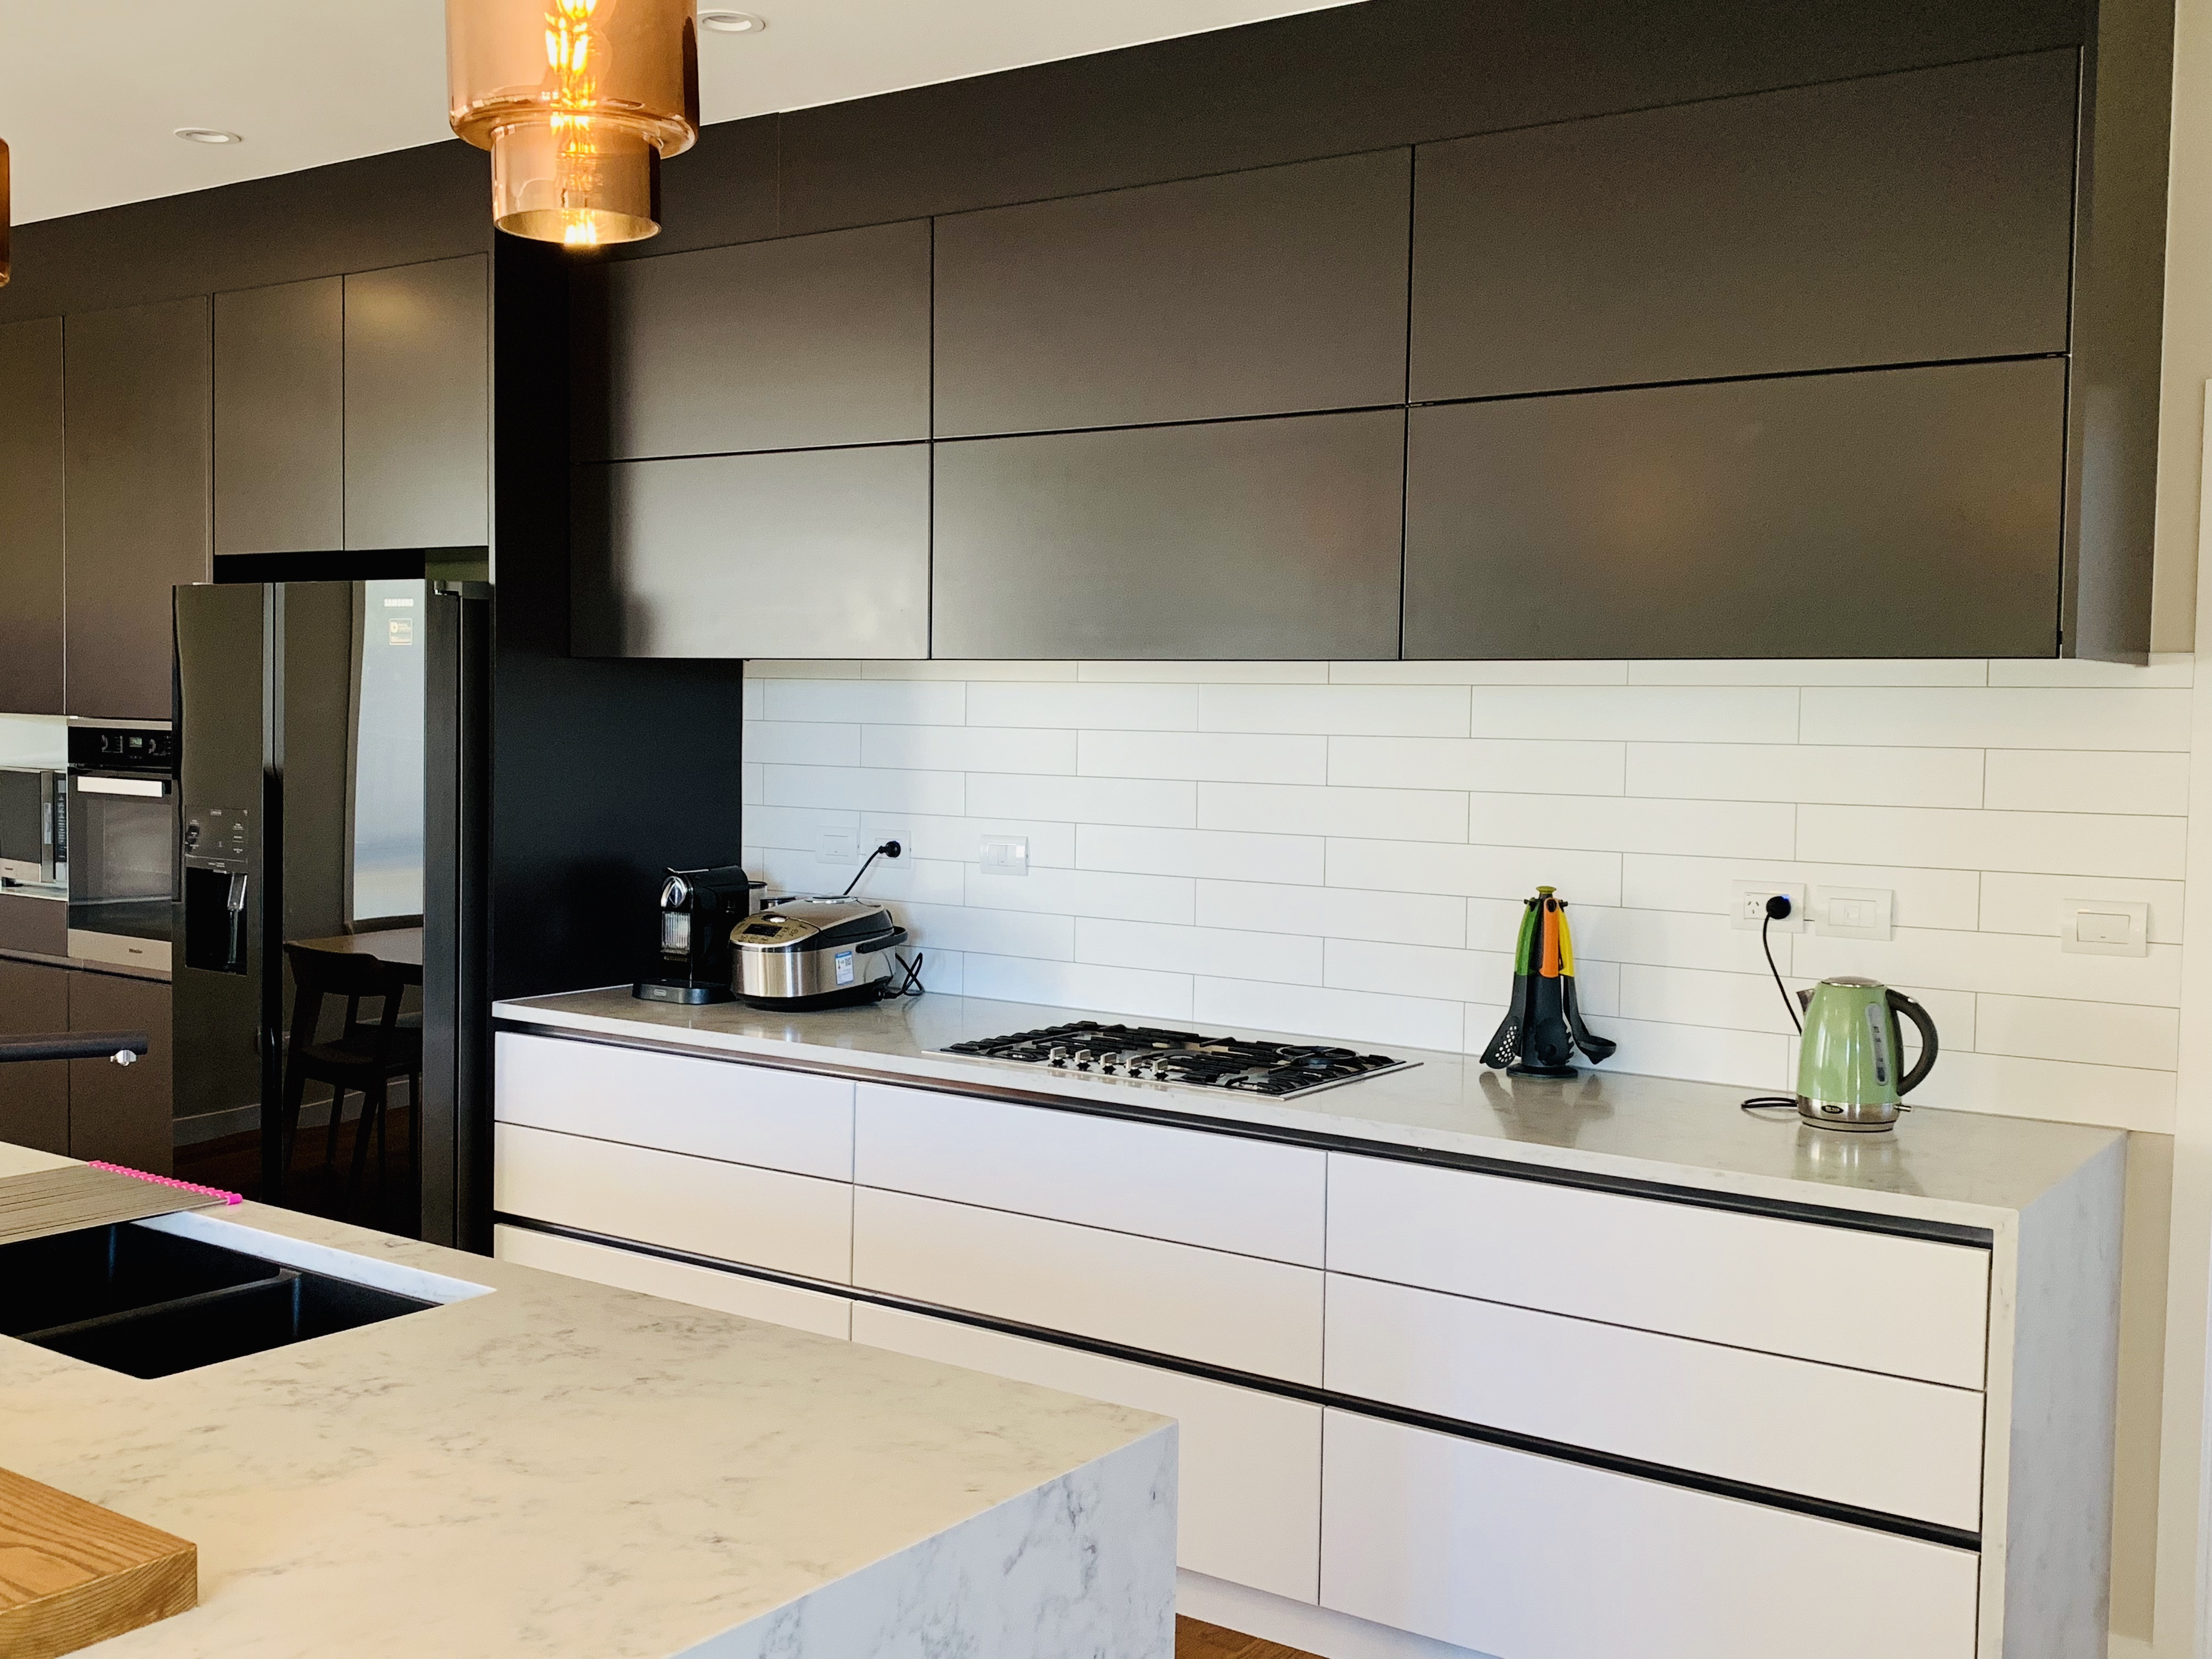 GJ-Kitchens-saint-helierss-kitchen-4-20190401222609892